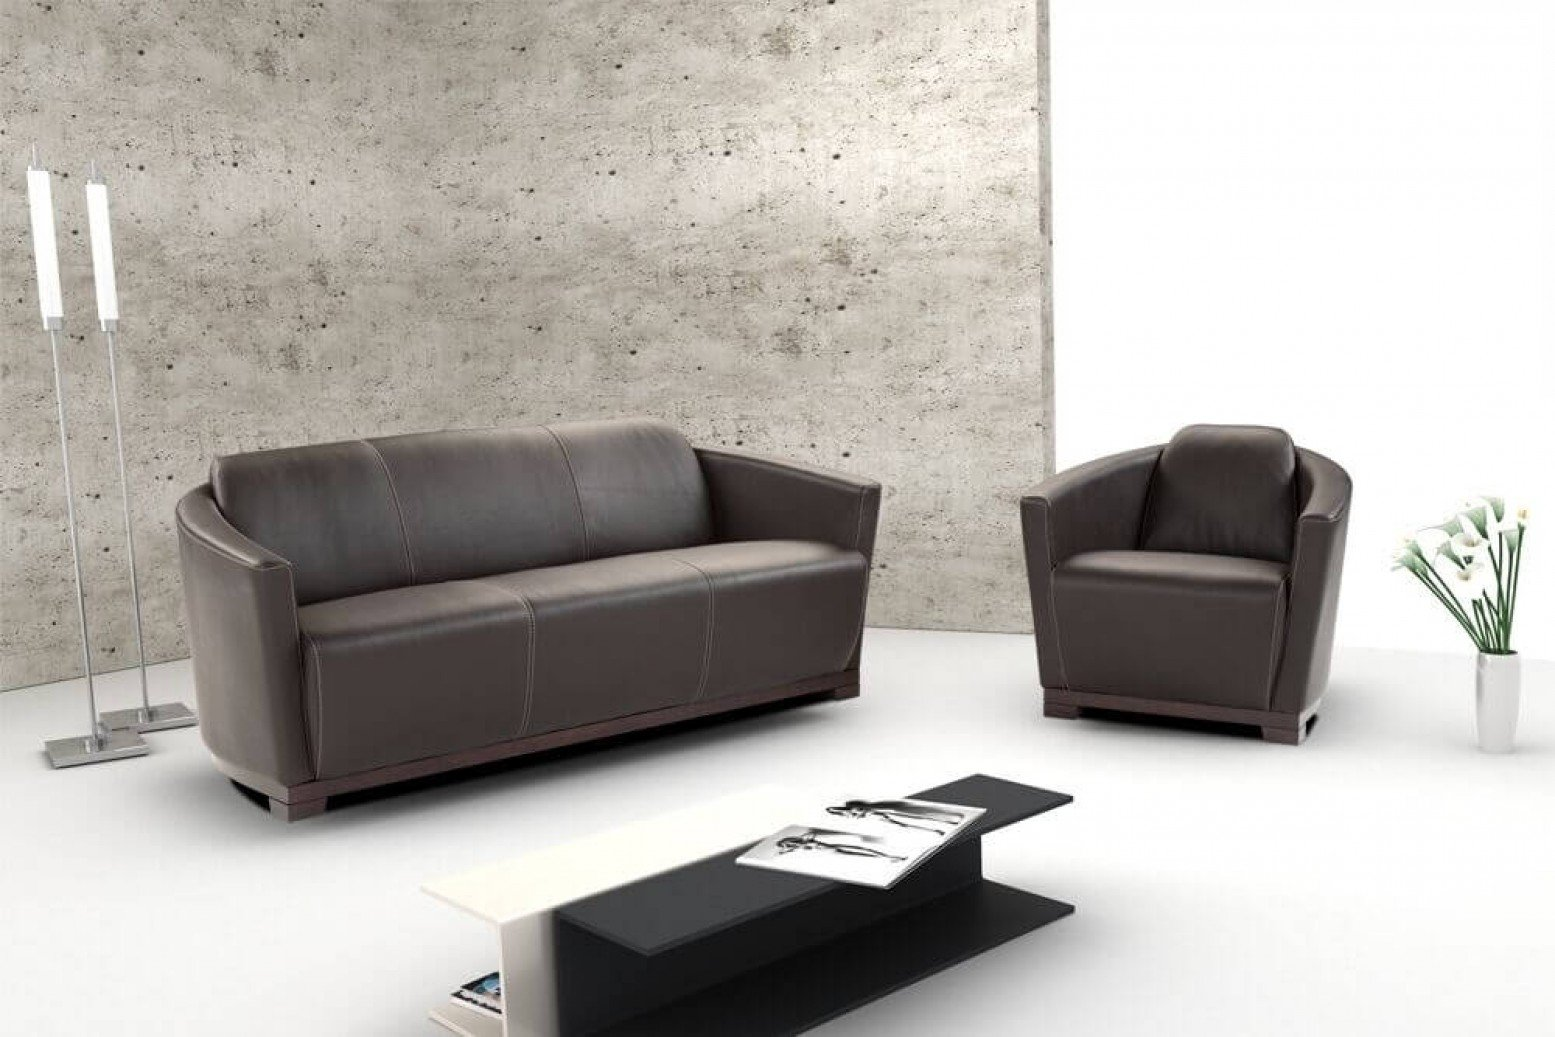 Hotel Italian Leather Sofa Set